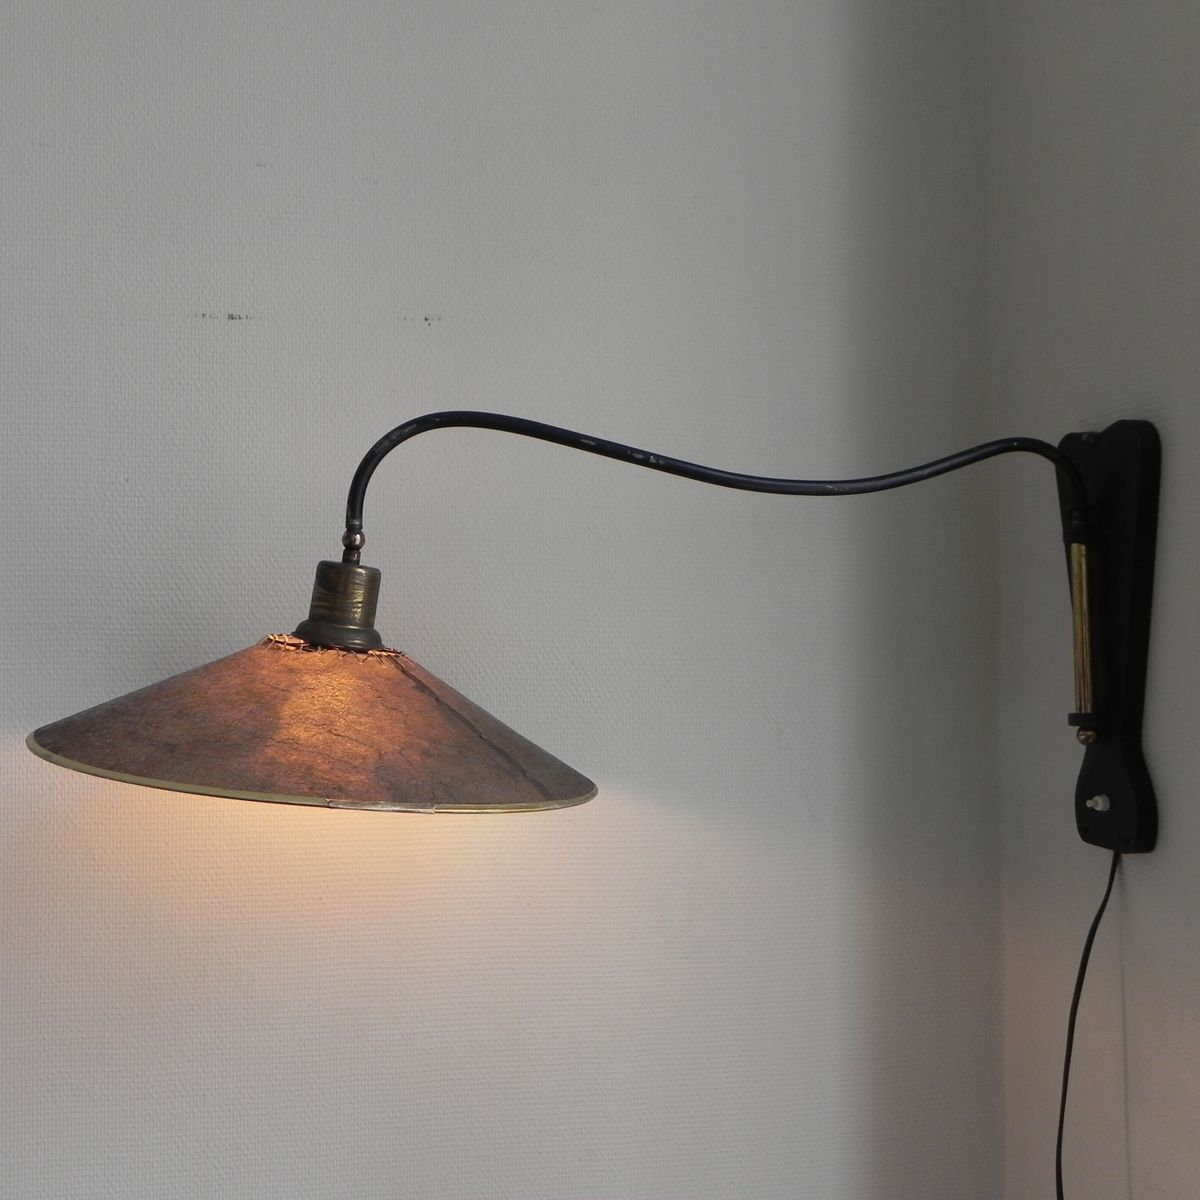 Adjustable Height Wall Lamps : Vintage Belgian Adjustable Wall Lamp, 1950s for sale at Pamono